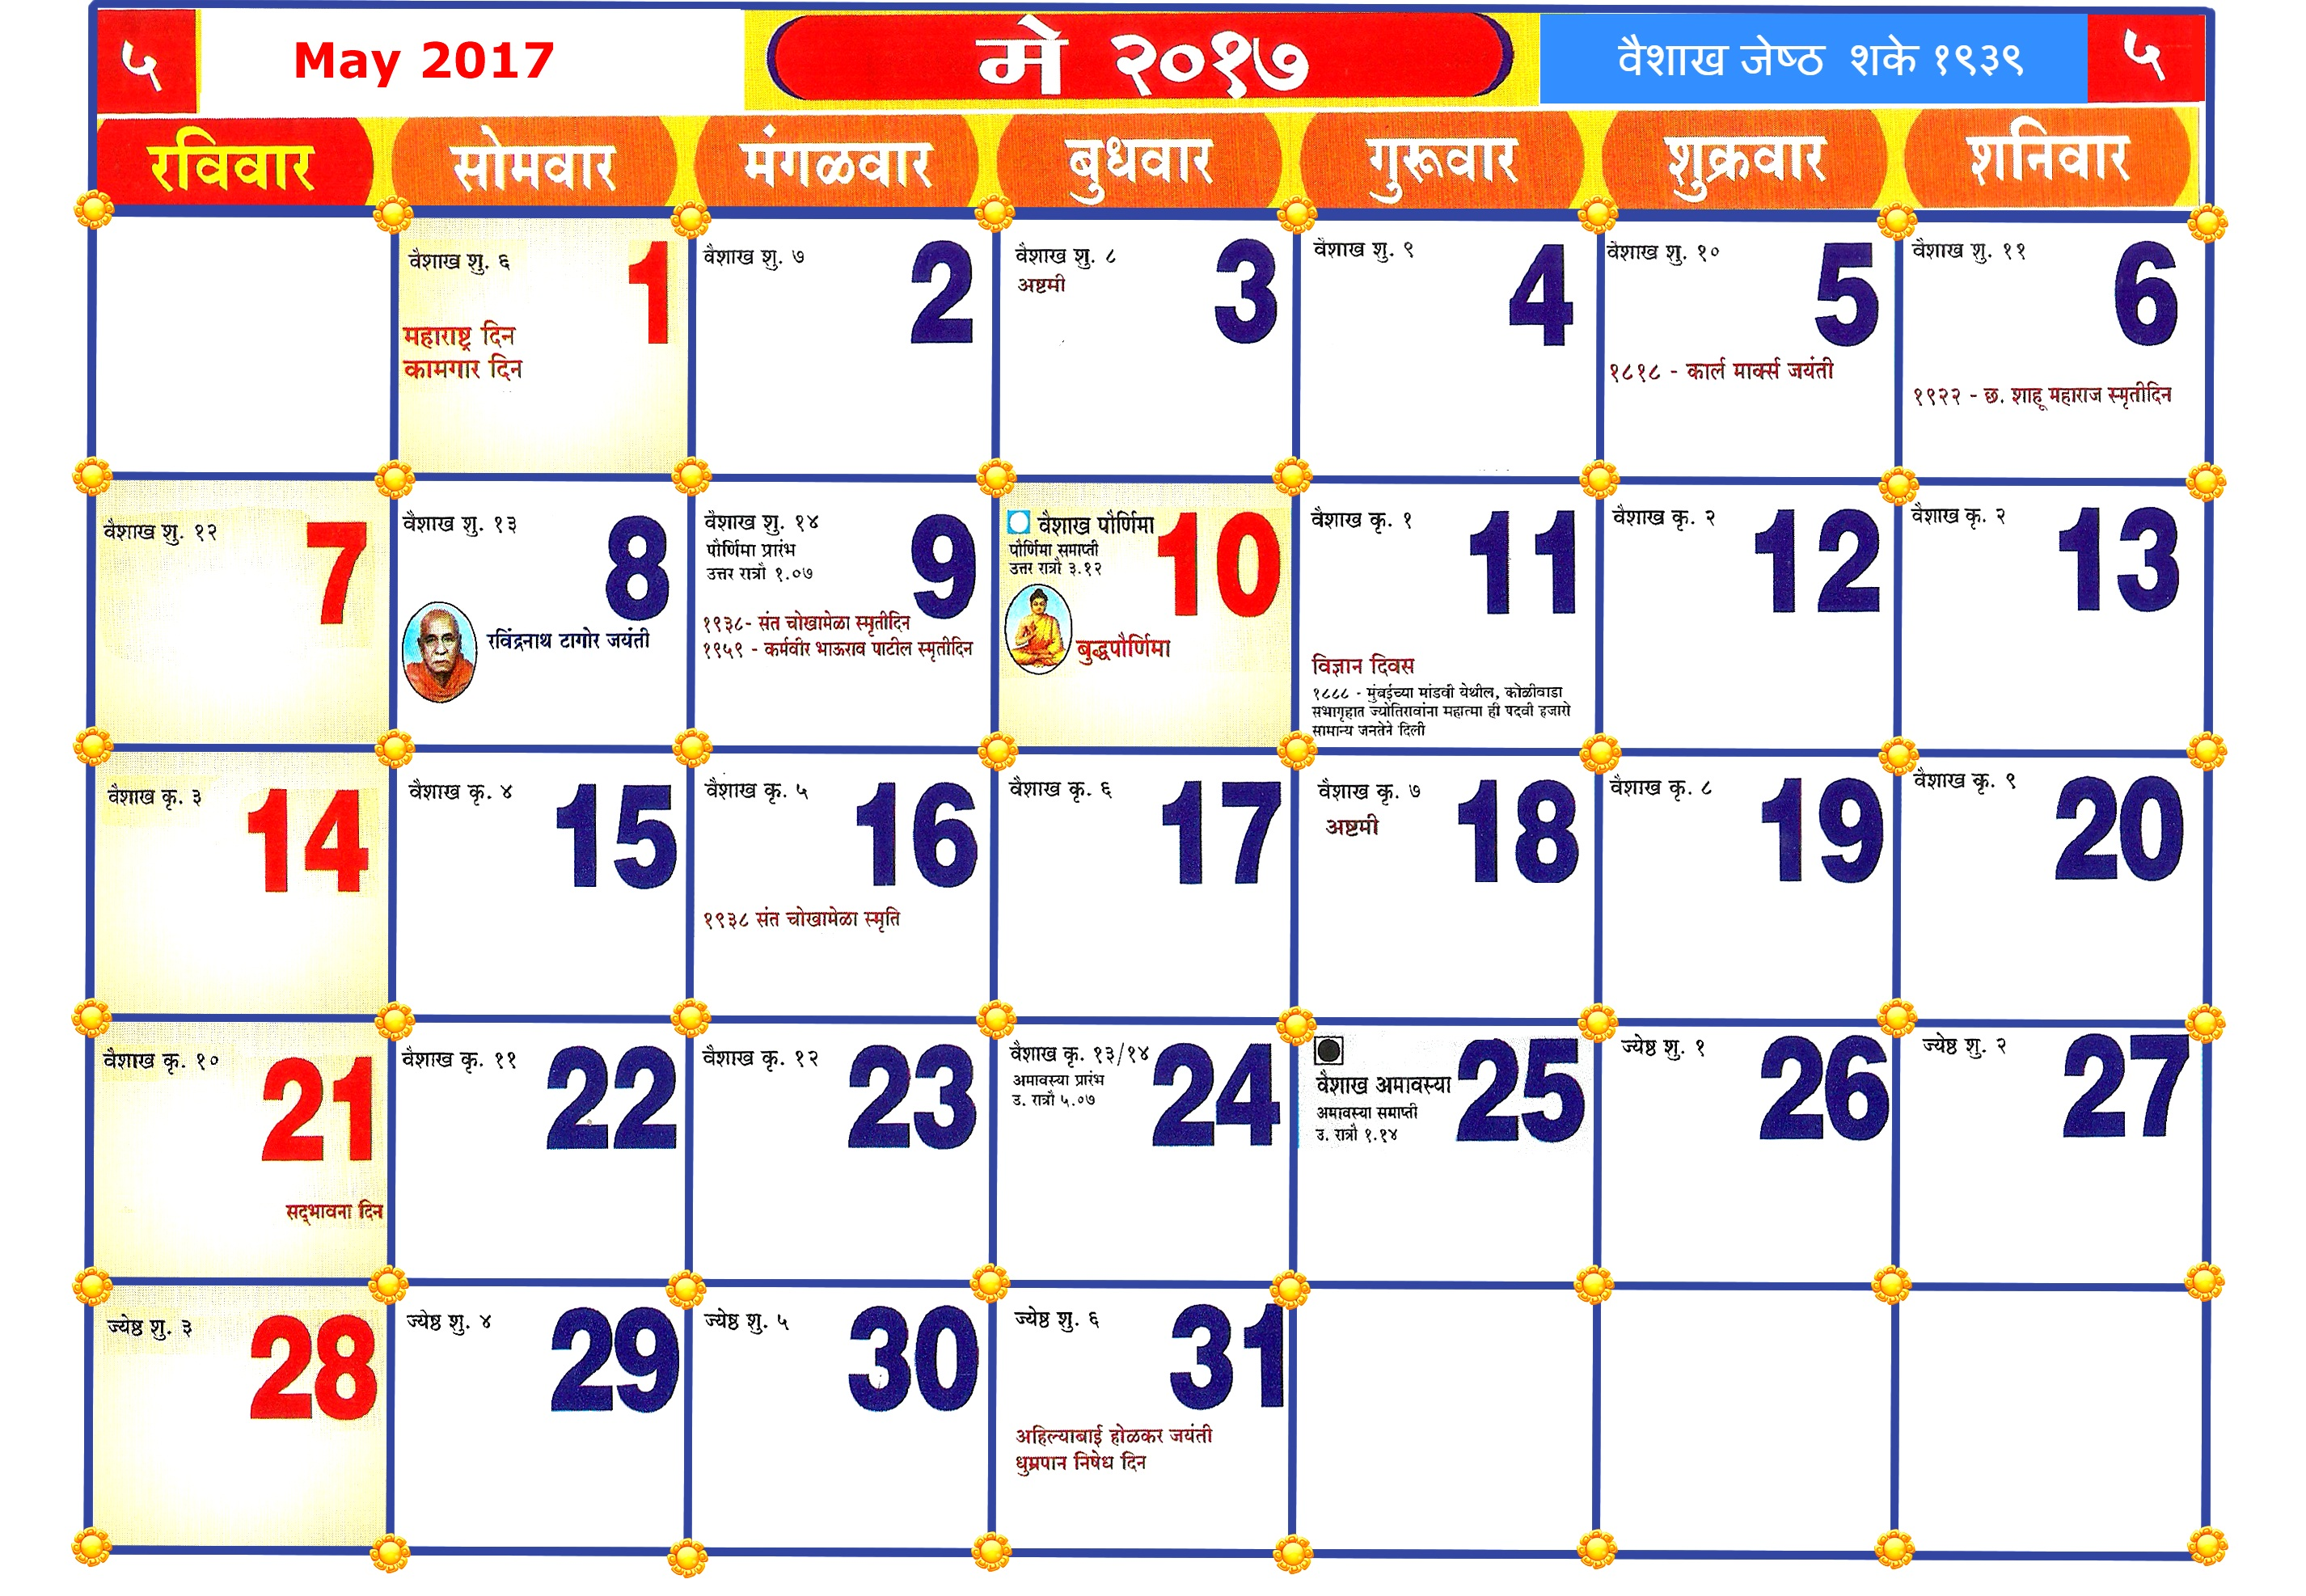 Marathi Calendar 2017 May Free Download